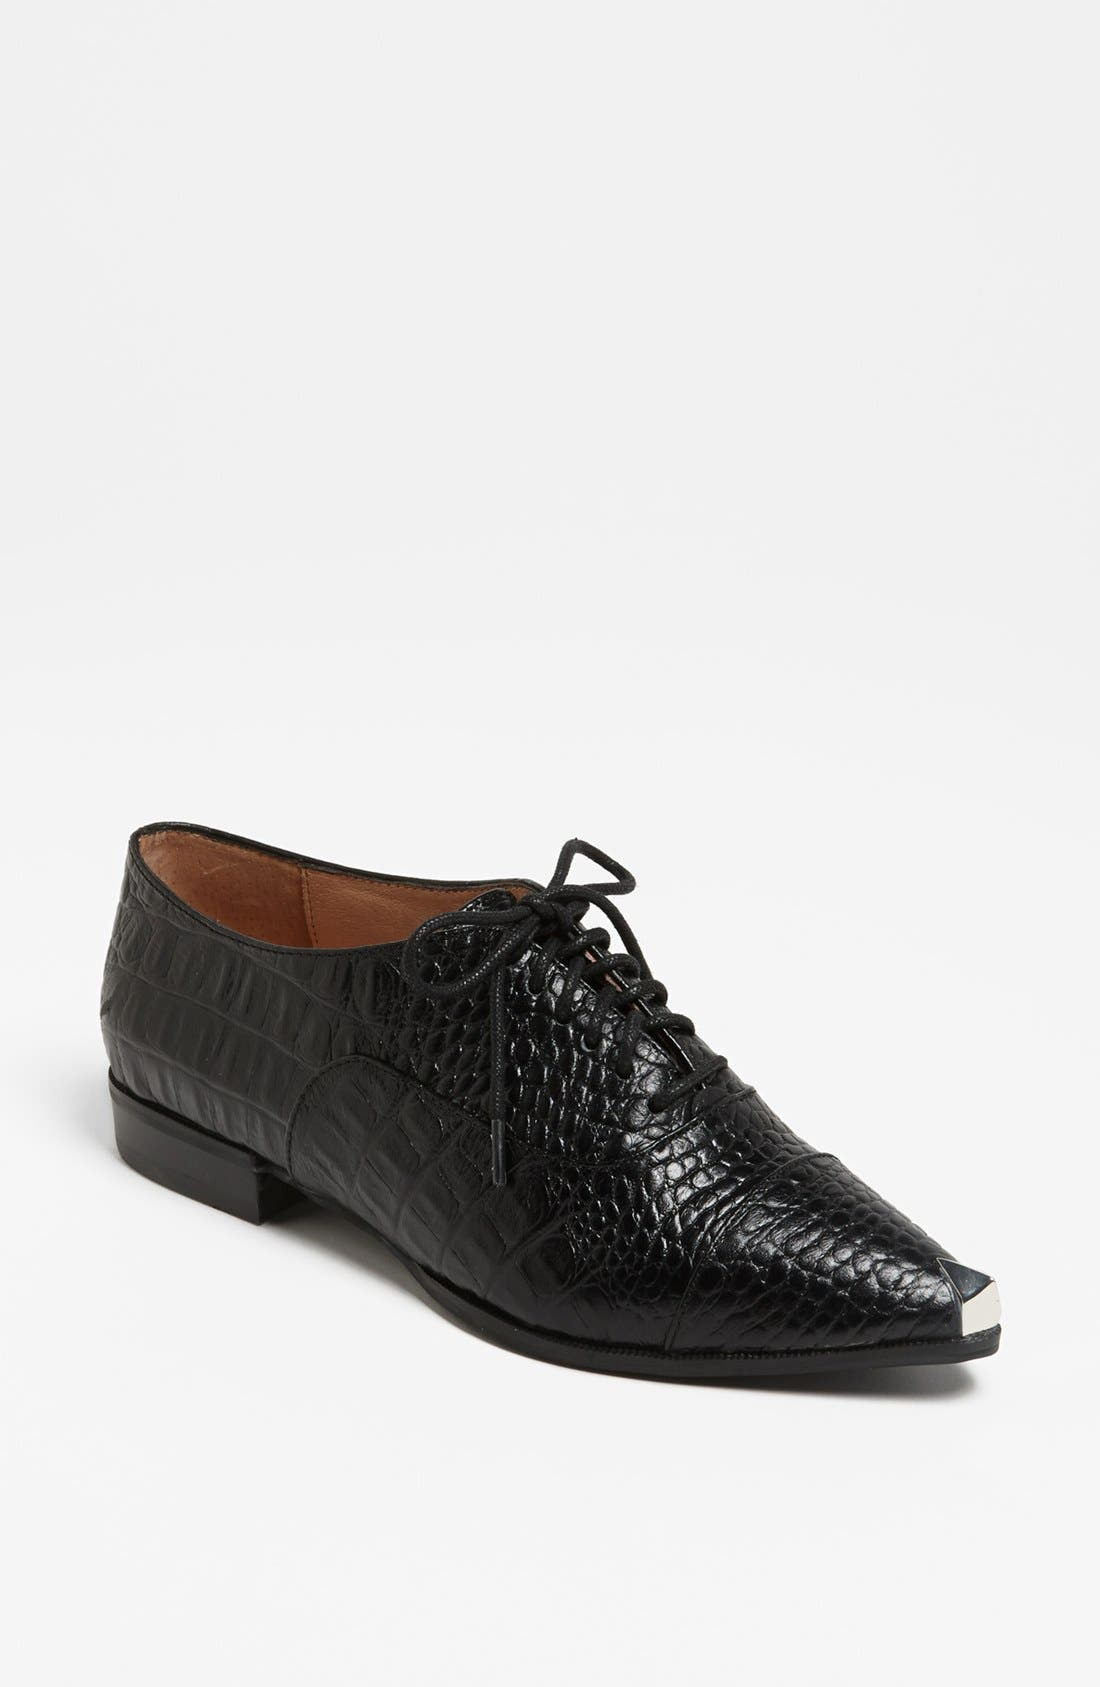 Alternate Image 1 Selected - Jeffrey Campbell 'Damone' Oxford Flat